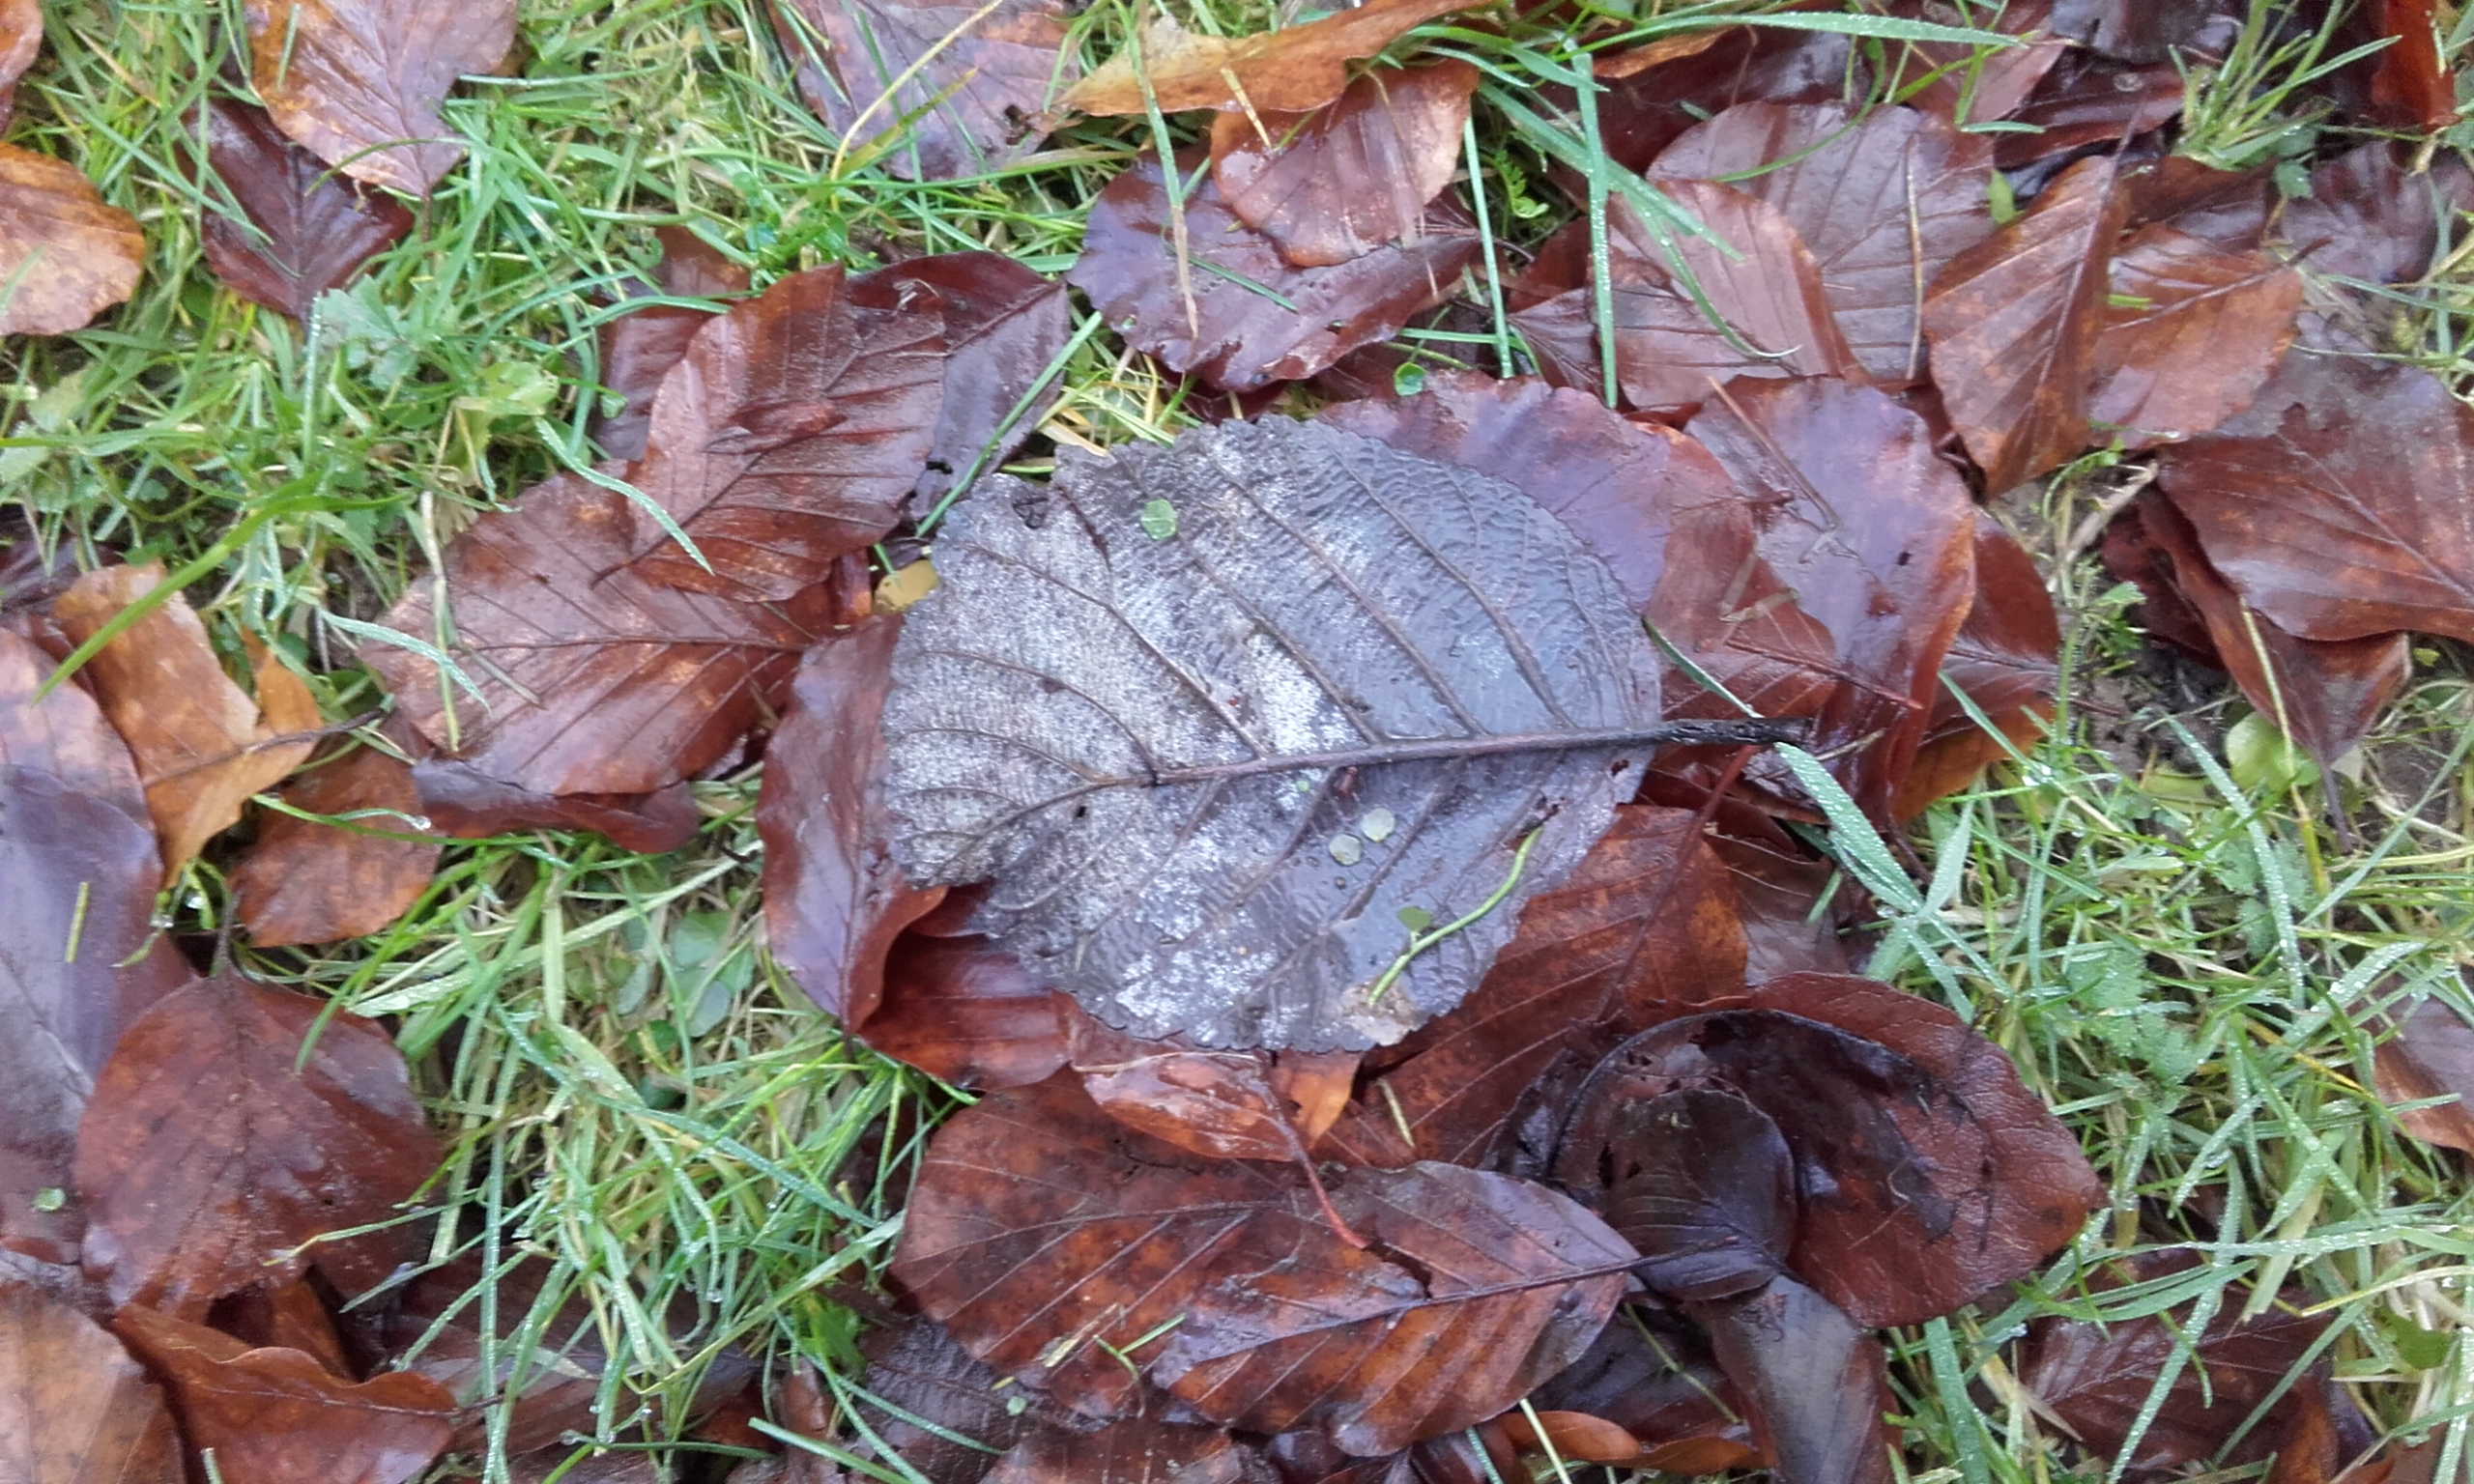 Fallen beech leaves on the wet ground